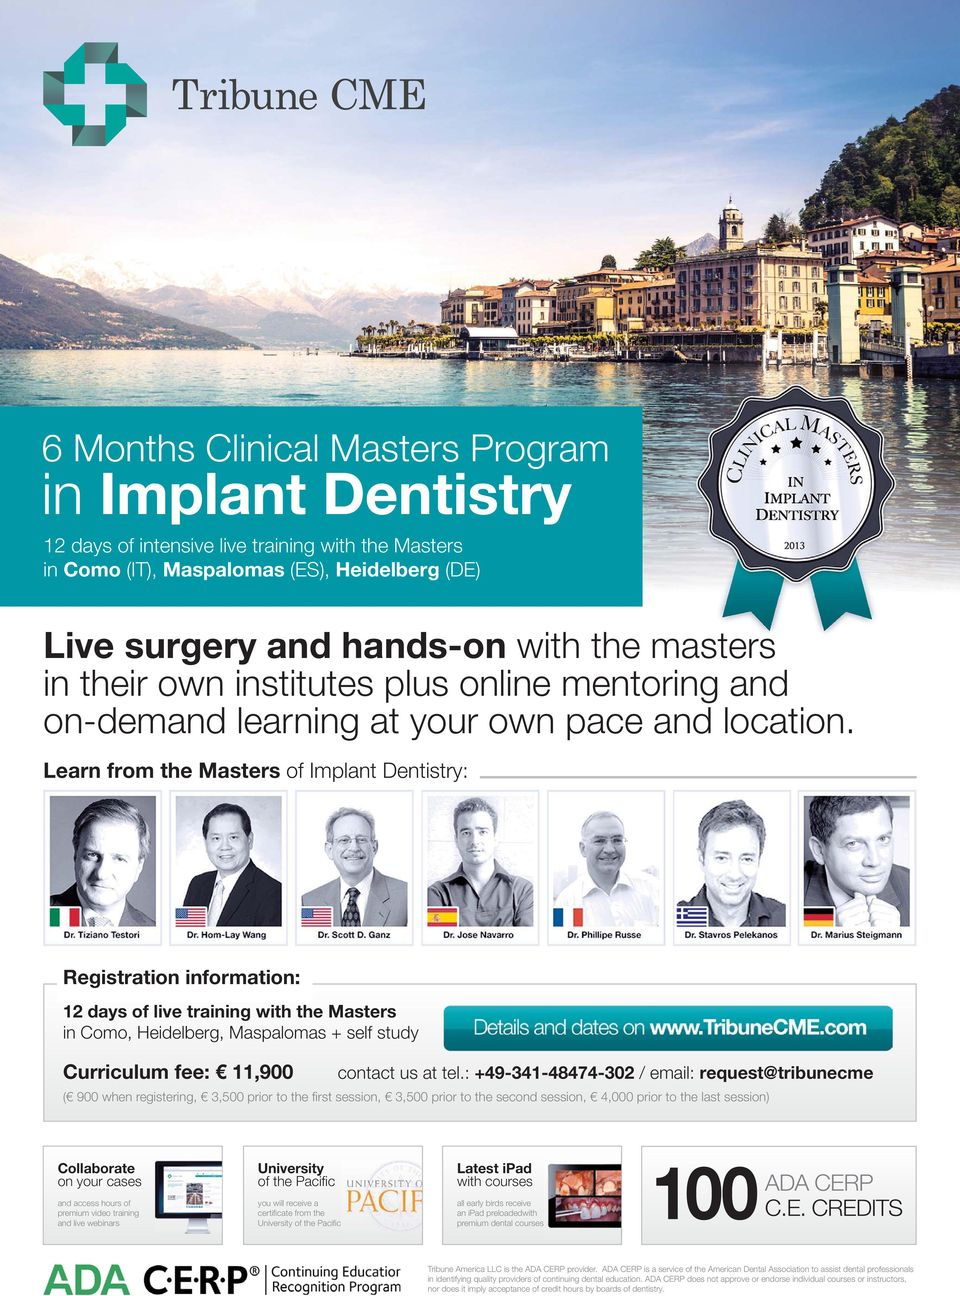 Learn from the Masters of Implant Dentistry: Registration information: 12 days of live training with the Masters in Como, Heidelberg, Maspalomas + self study Curriculum fee: 11,900 contact us at tel.